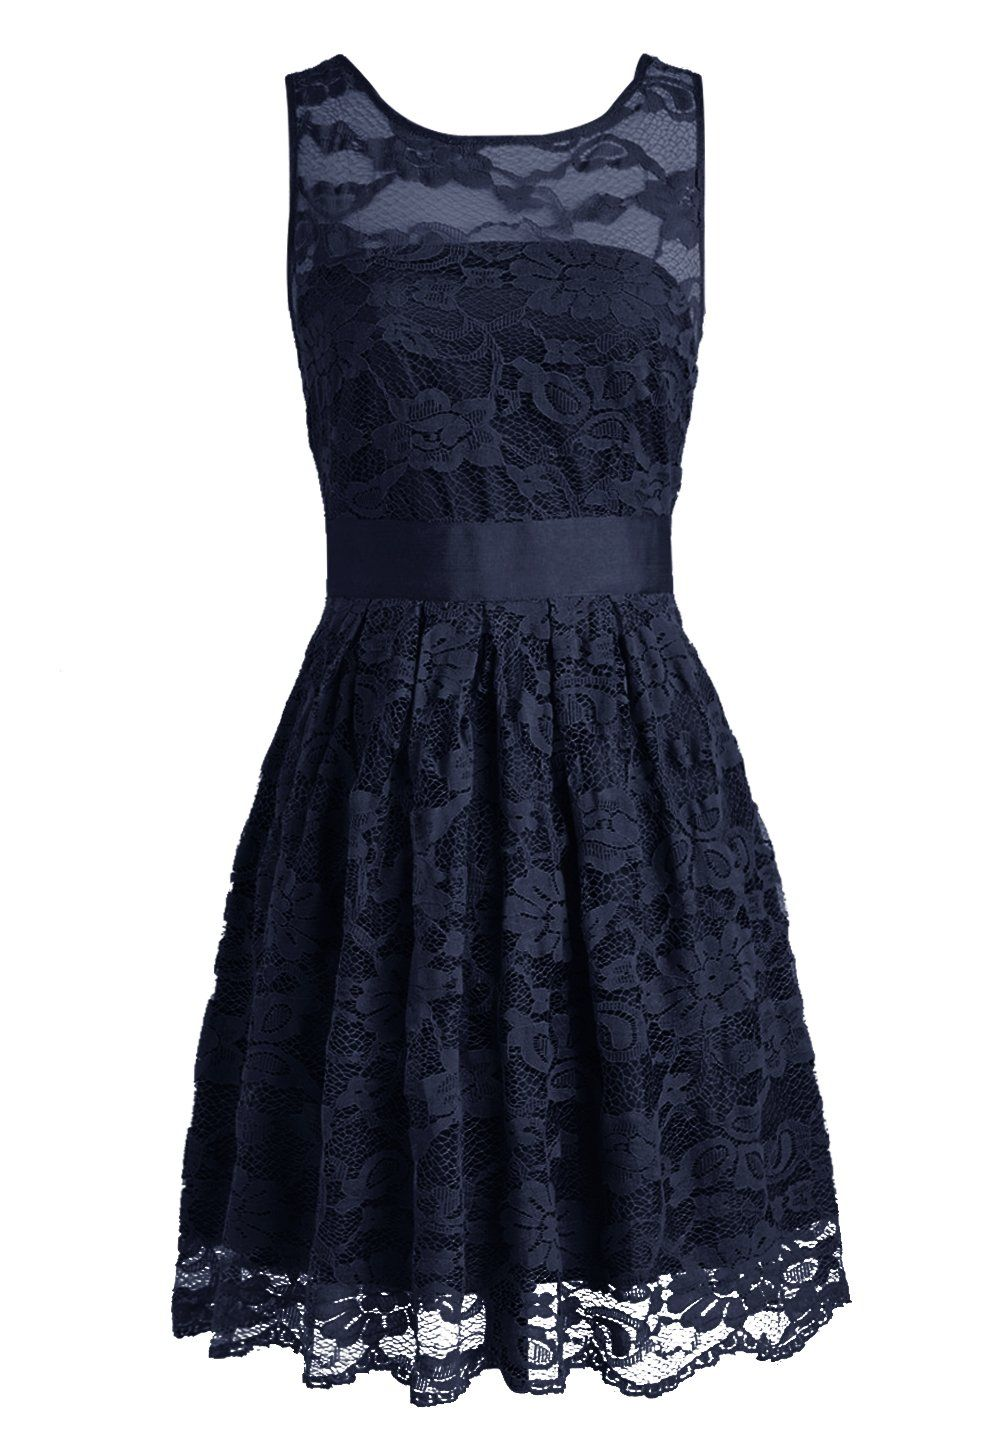 Wedtrend floral lace dress bridesmaid dress short homecoming dress